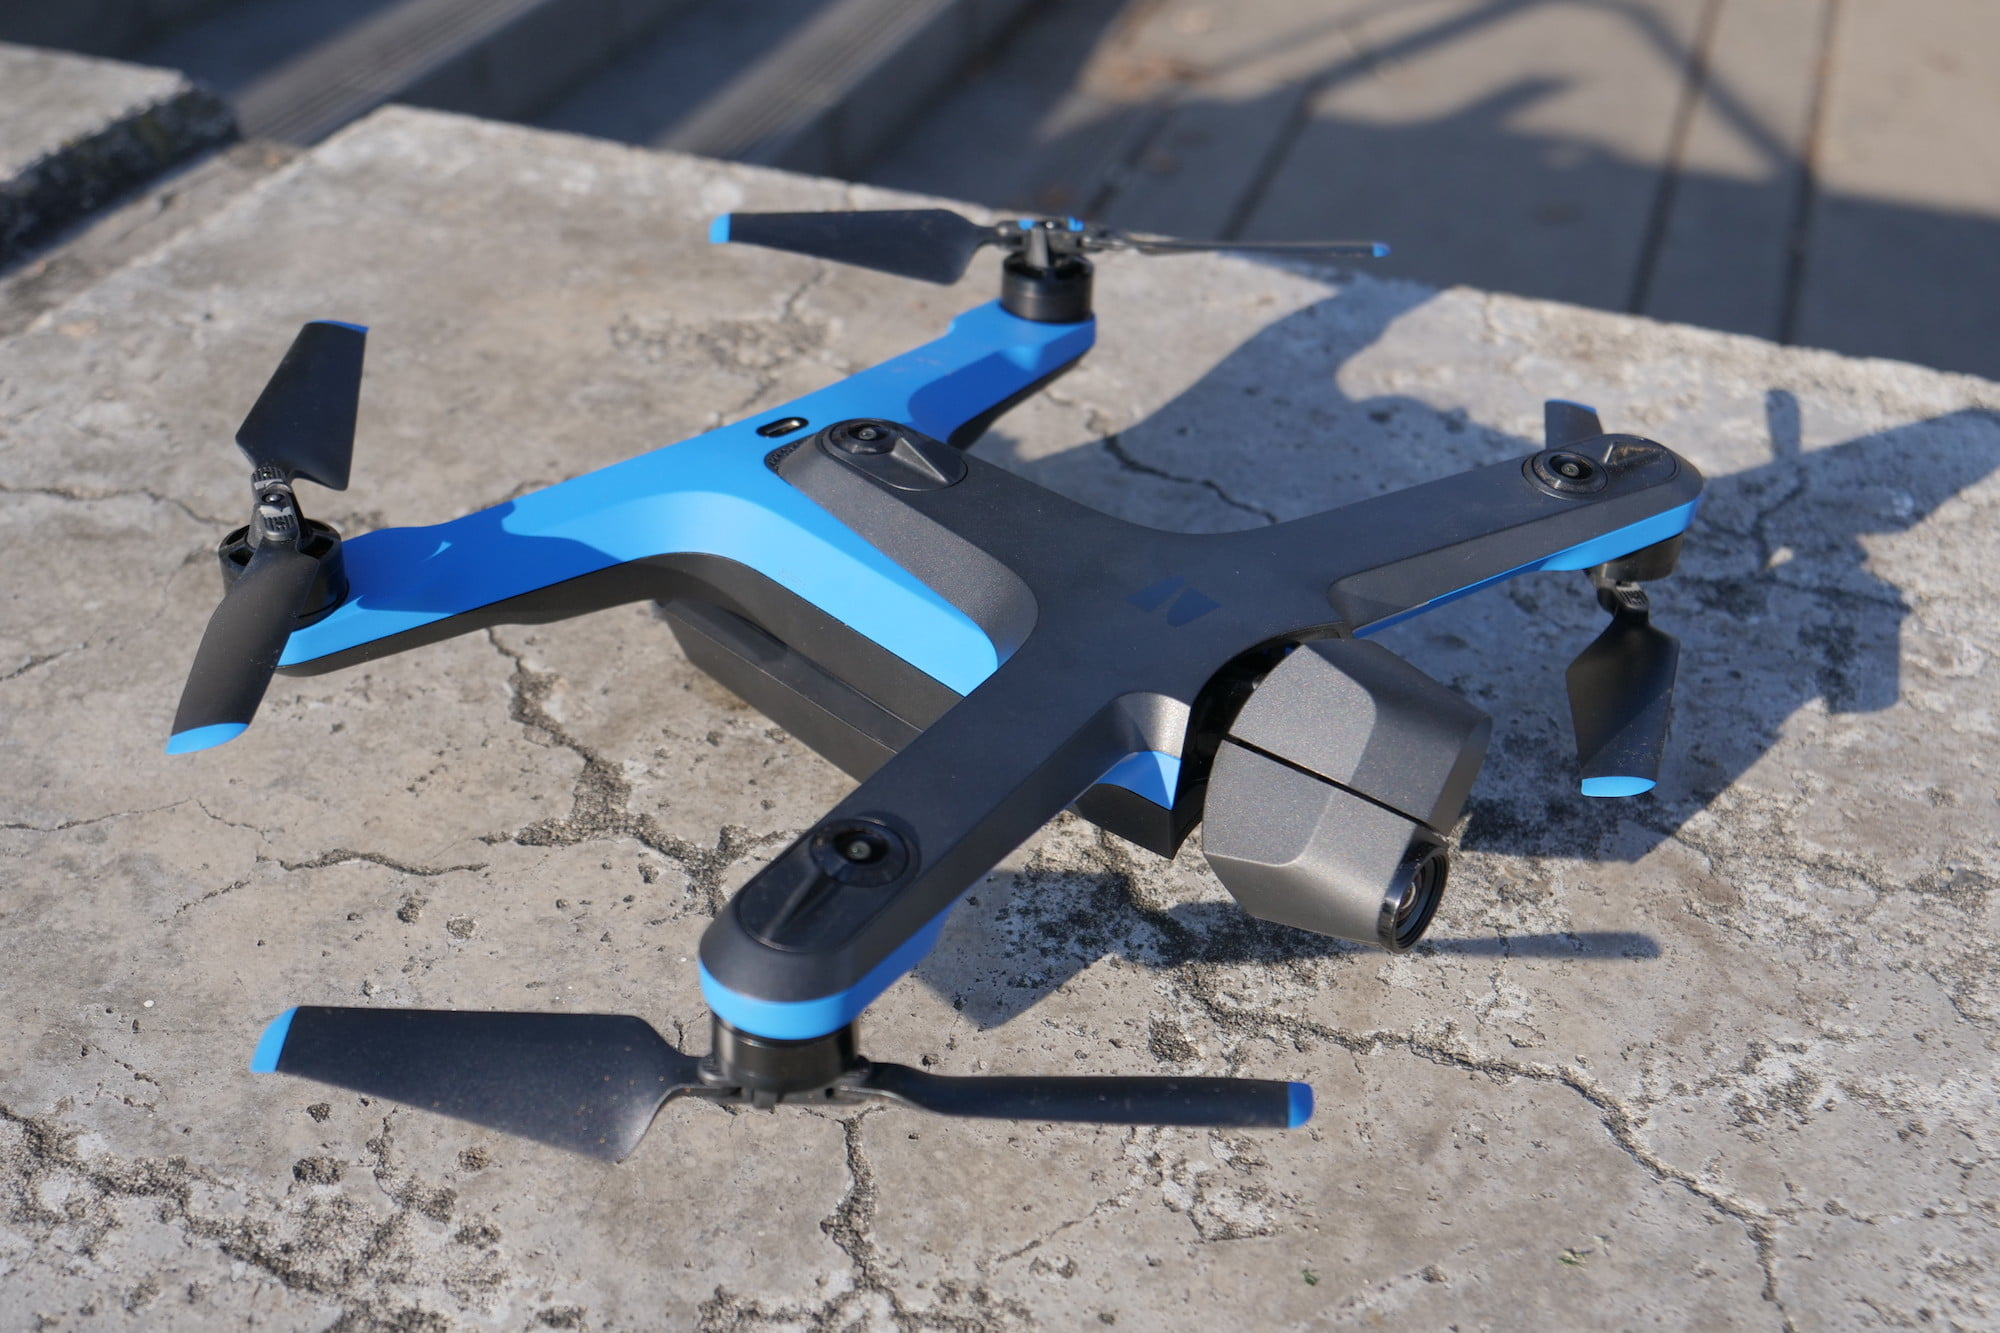 Drone Tech & Drone News cover image